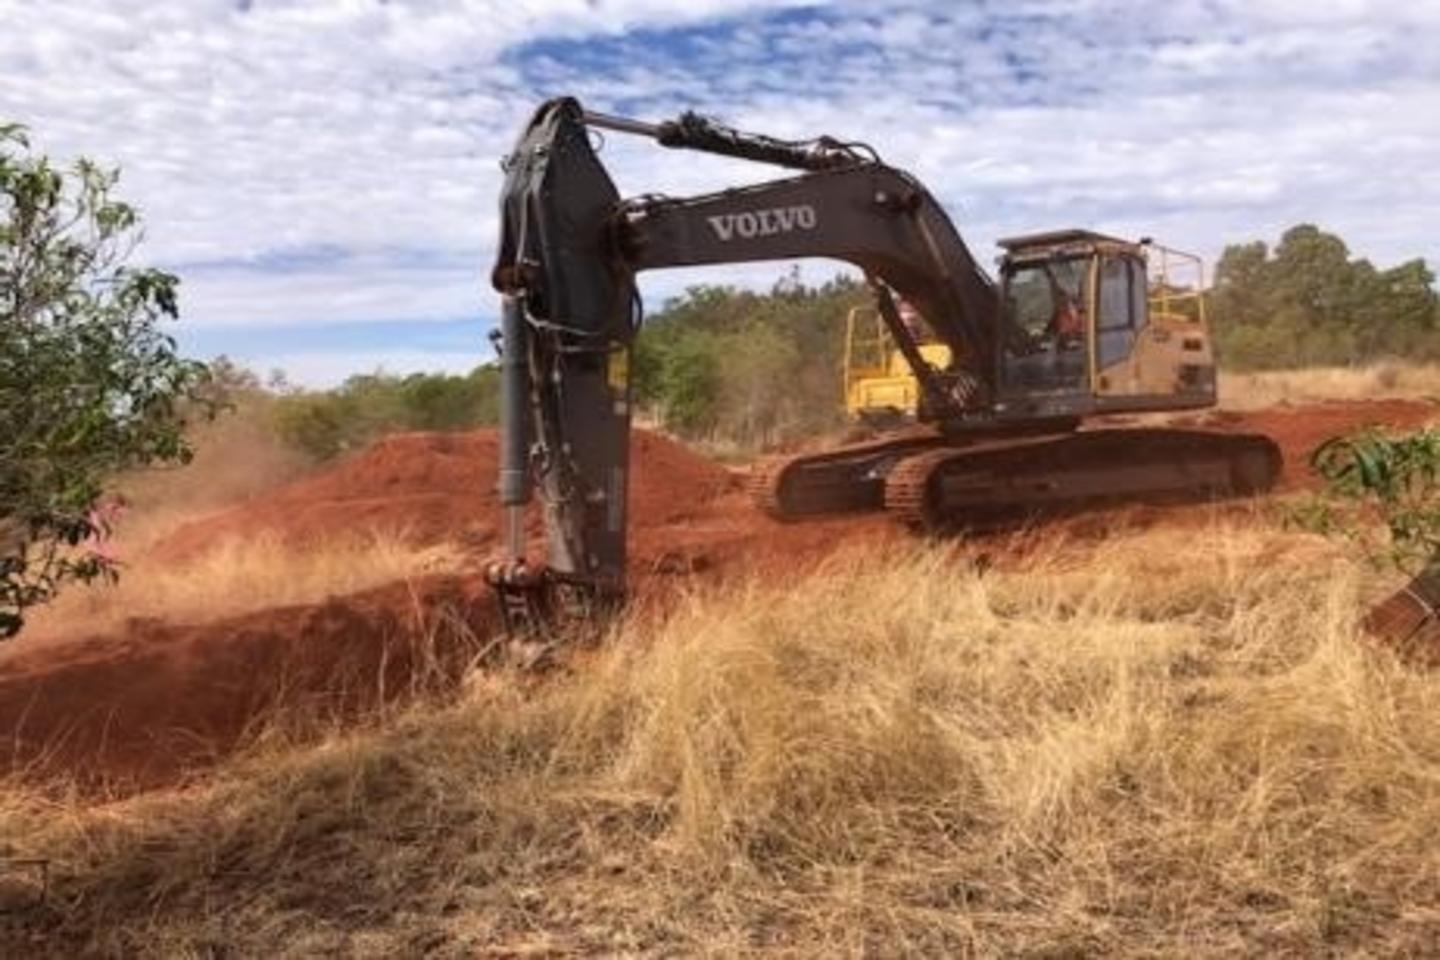 Australian Bauxite set to shake COVID blues at QLD bauxite play